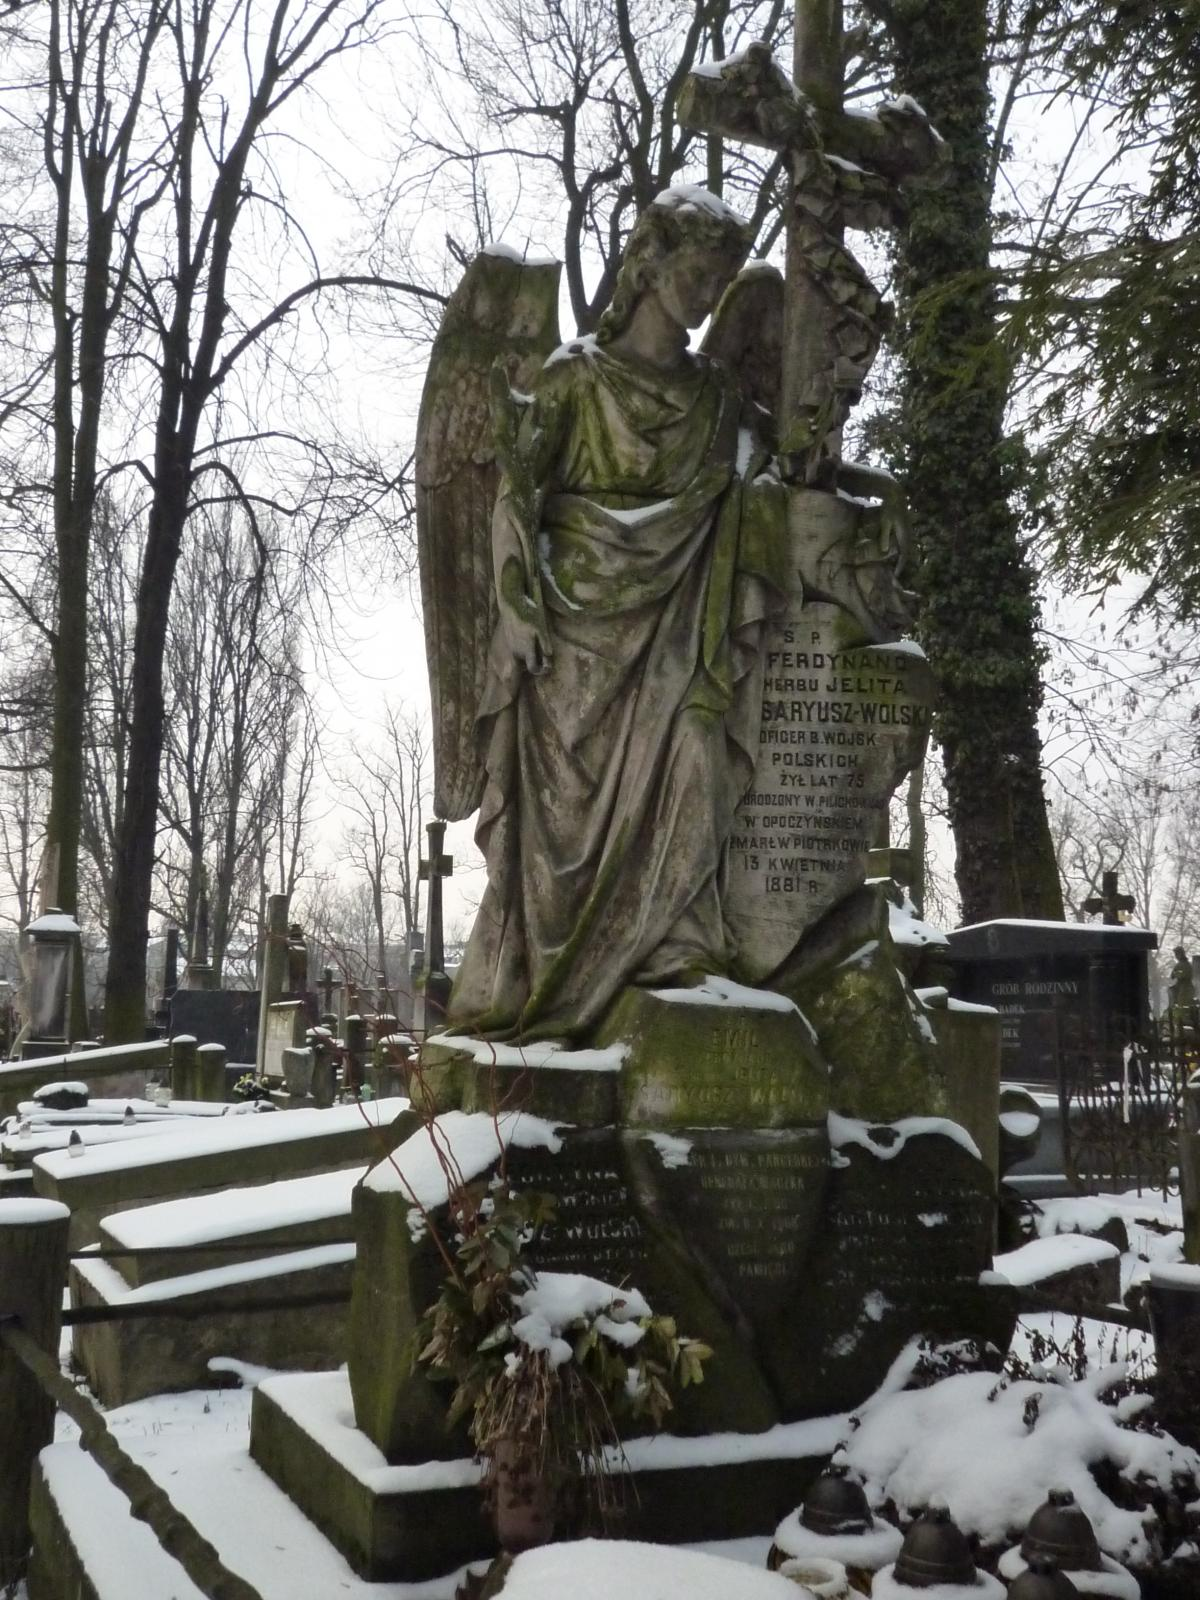 Wikipedia, Old Roman Catholic Cemetery in Piotrków Trybunalski, Self-published work, Uploaded via Ca